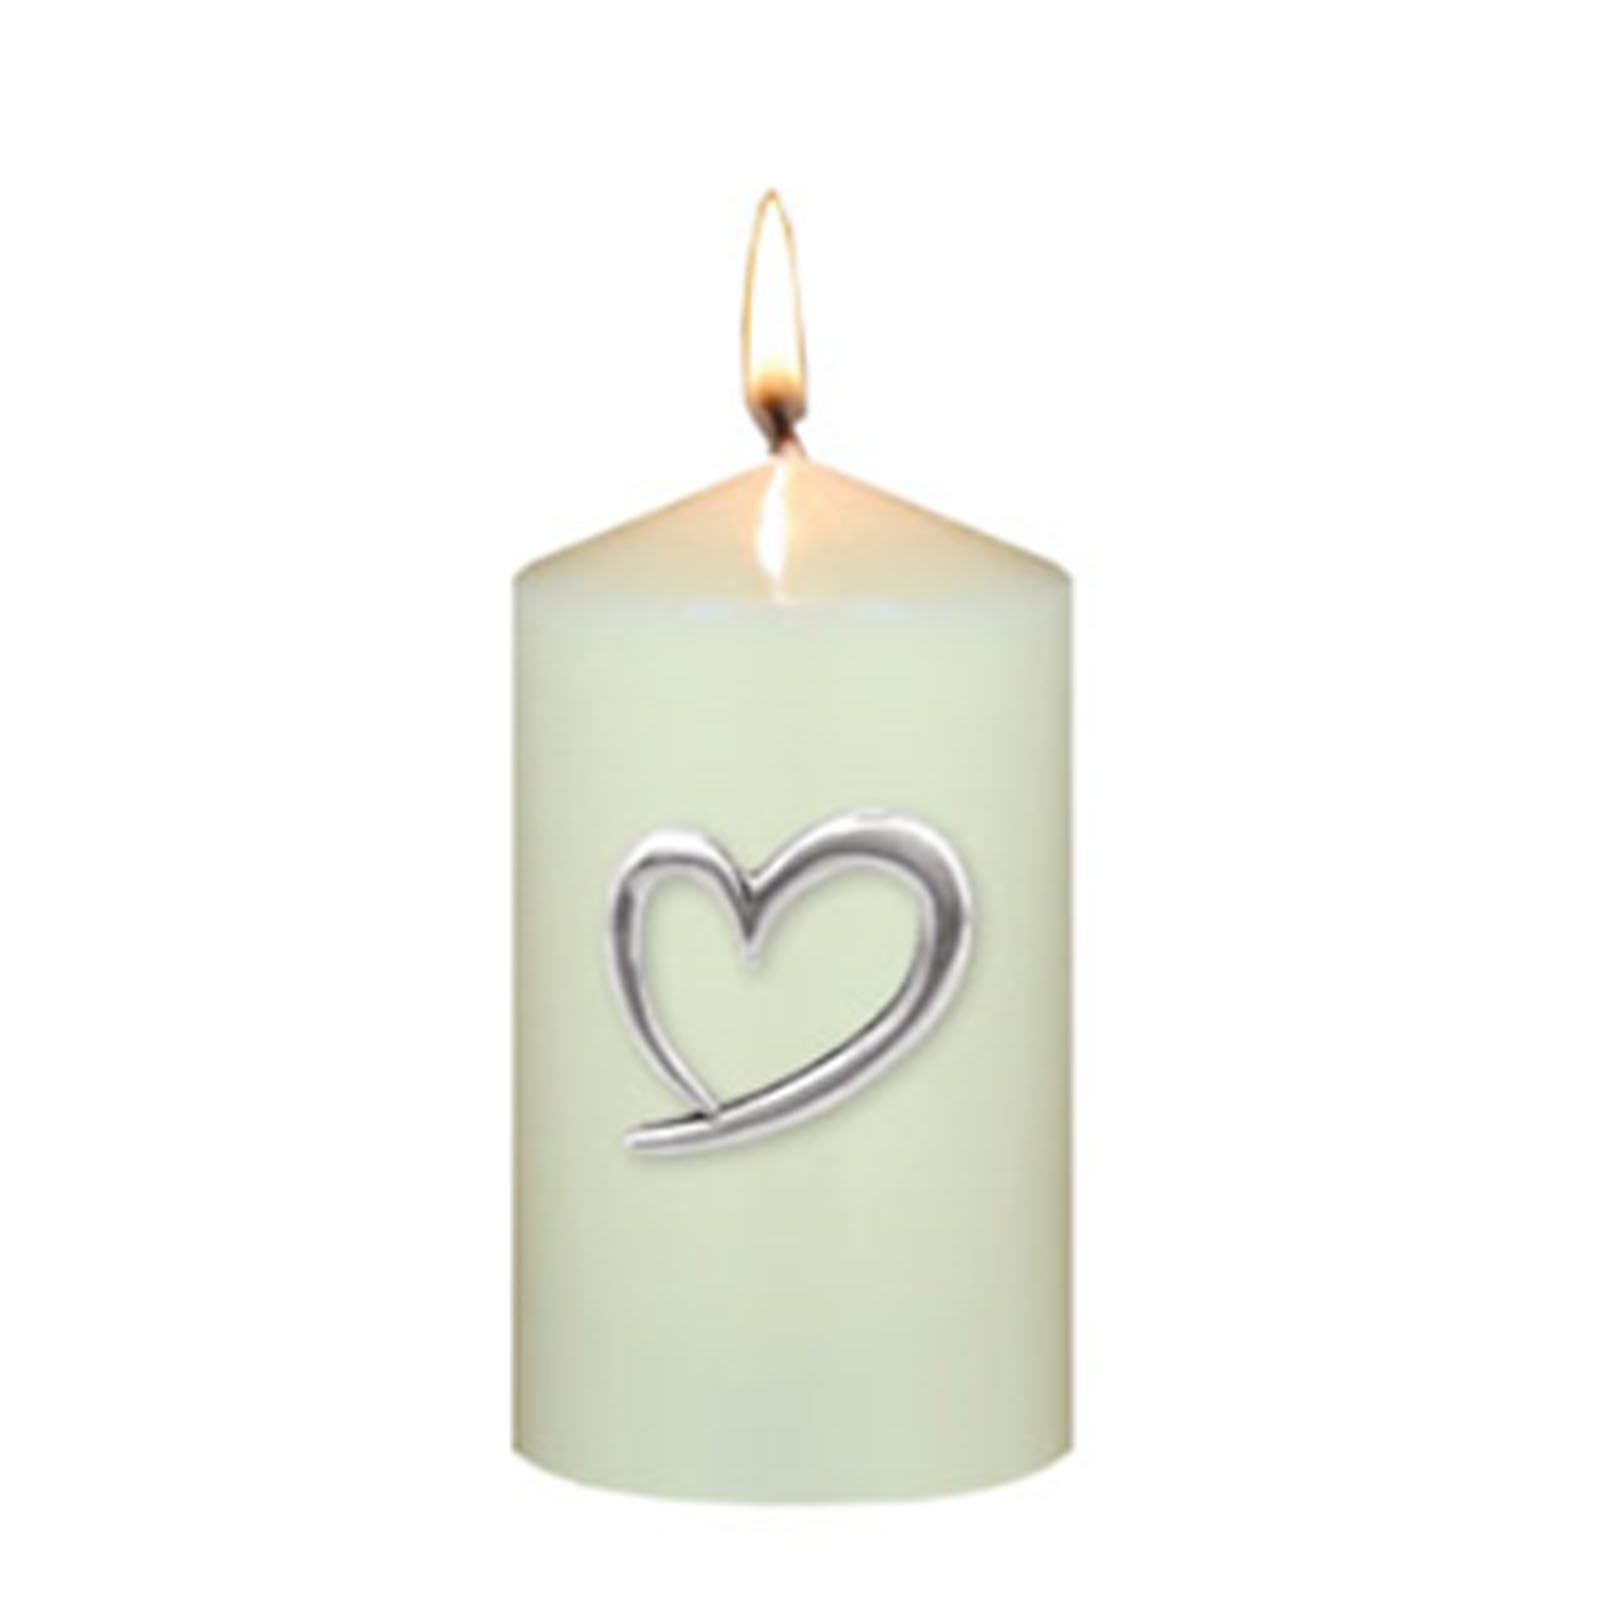 Heart Candle Pins by The English Pewter Company